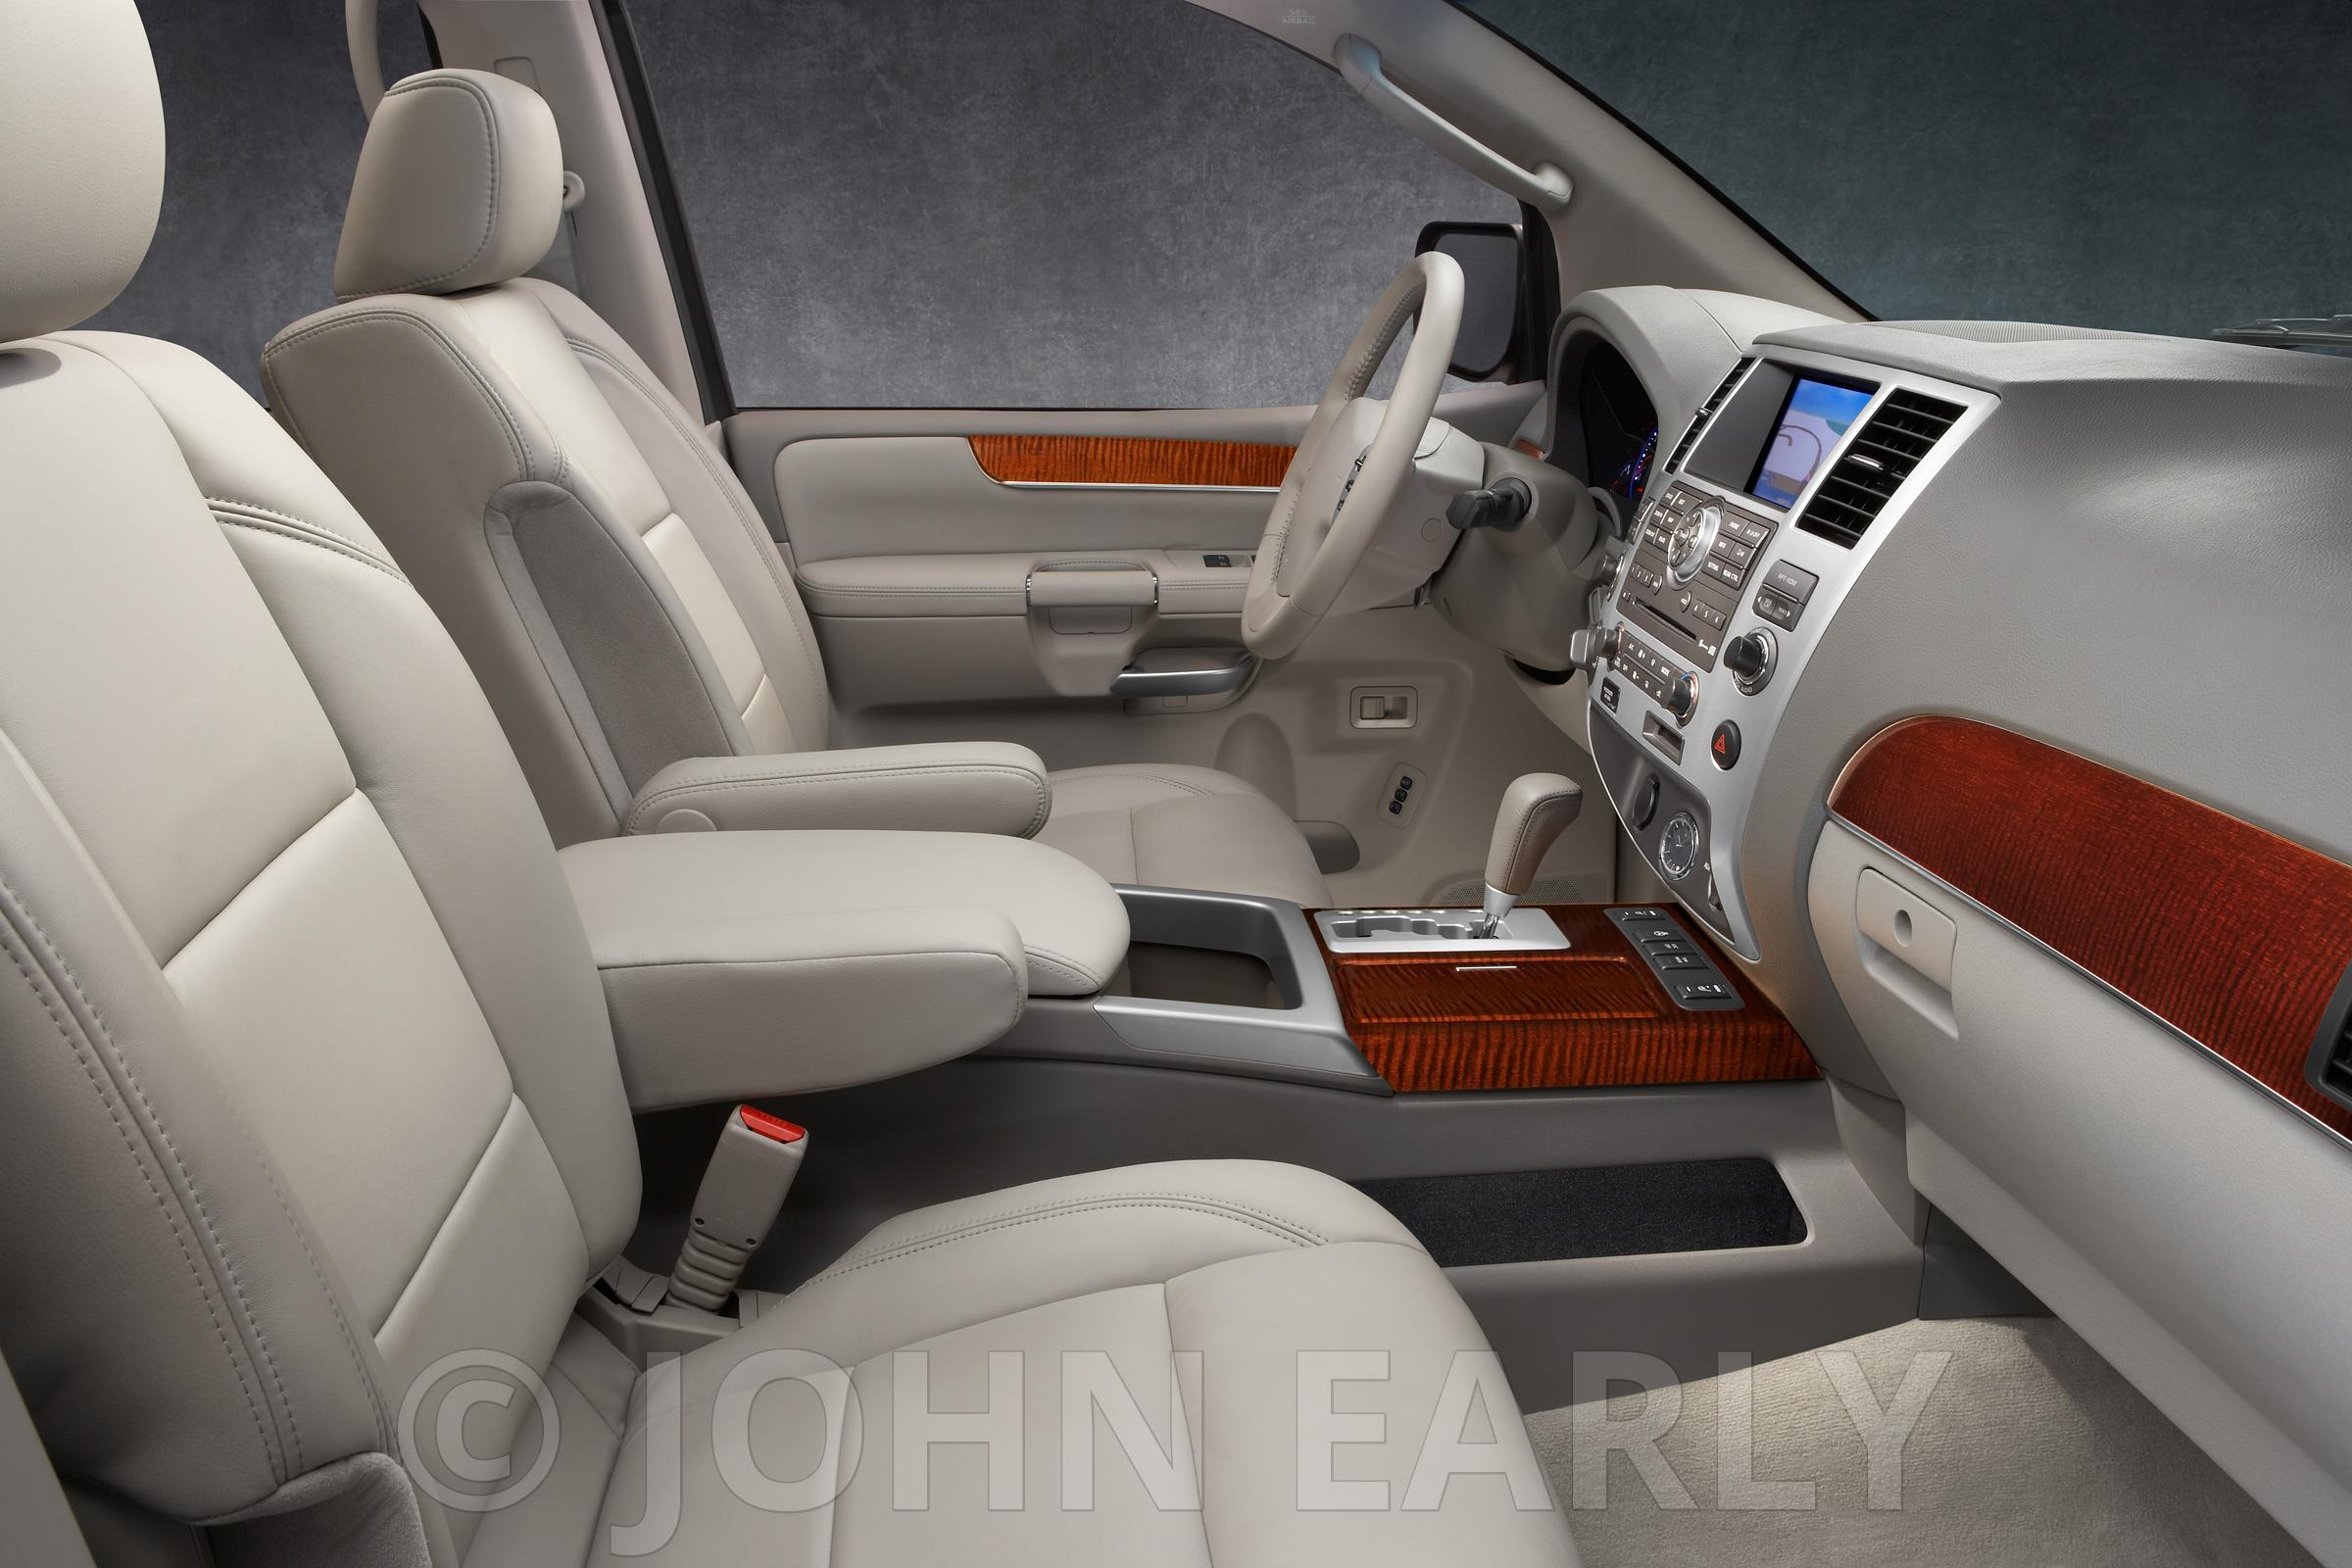 SUV Interior Wheat Leather Dark Wood trim